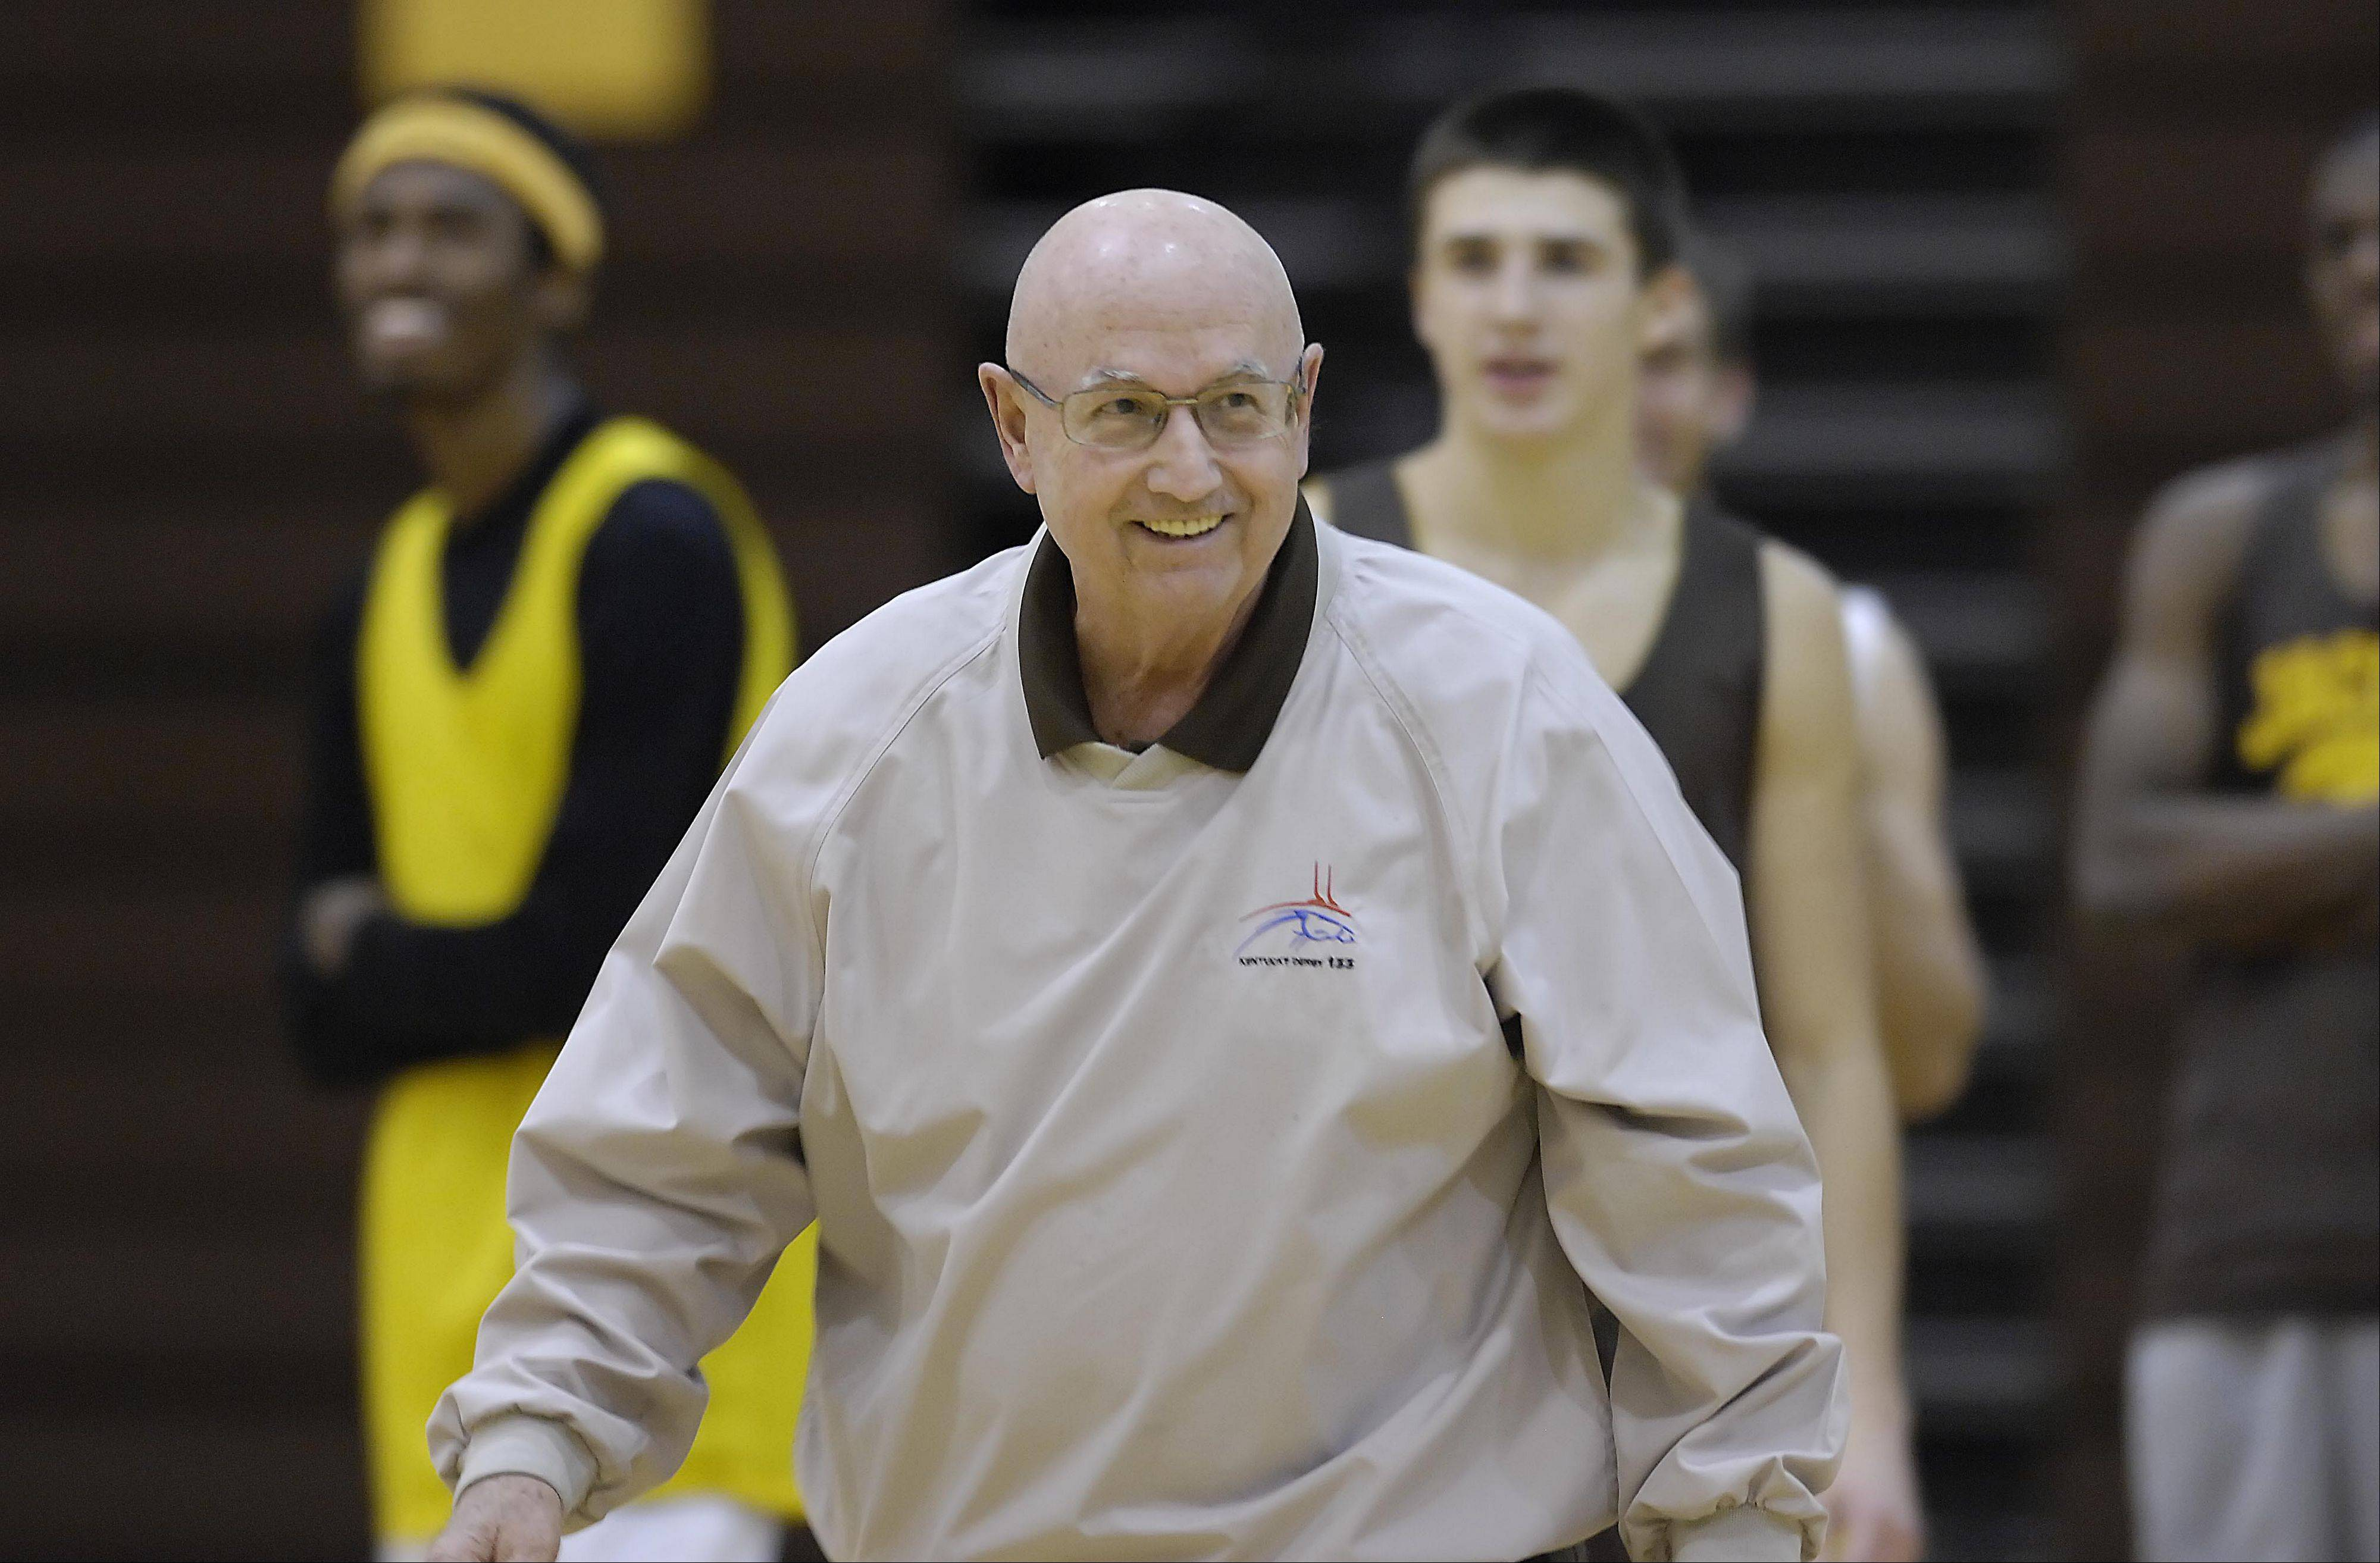 Coach Jim Hinkle will retire at the end of the boys basketball season at the age of 70. He says he has coached for 39 seasons because the players keep him young.